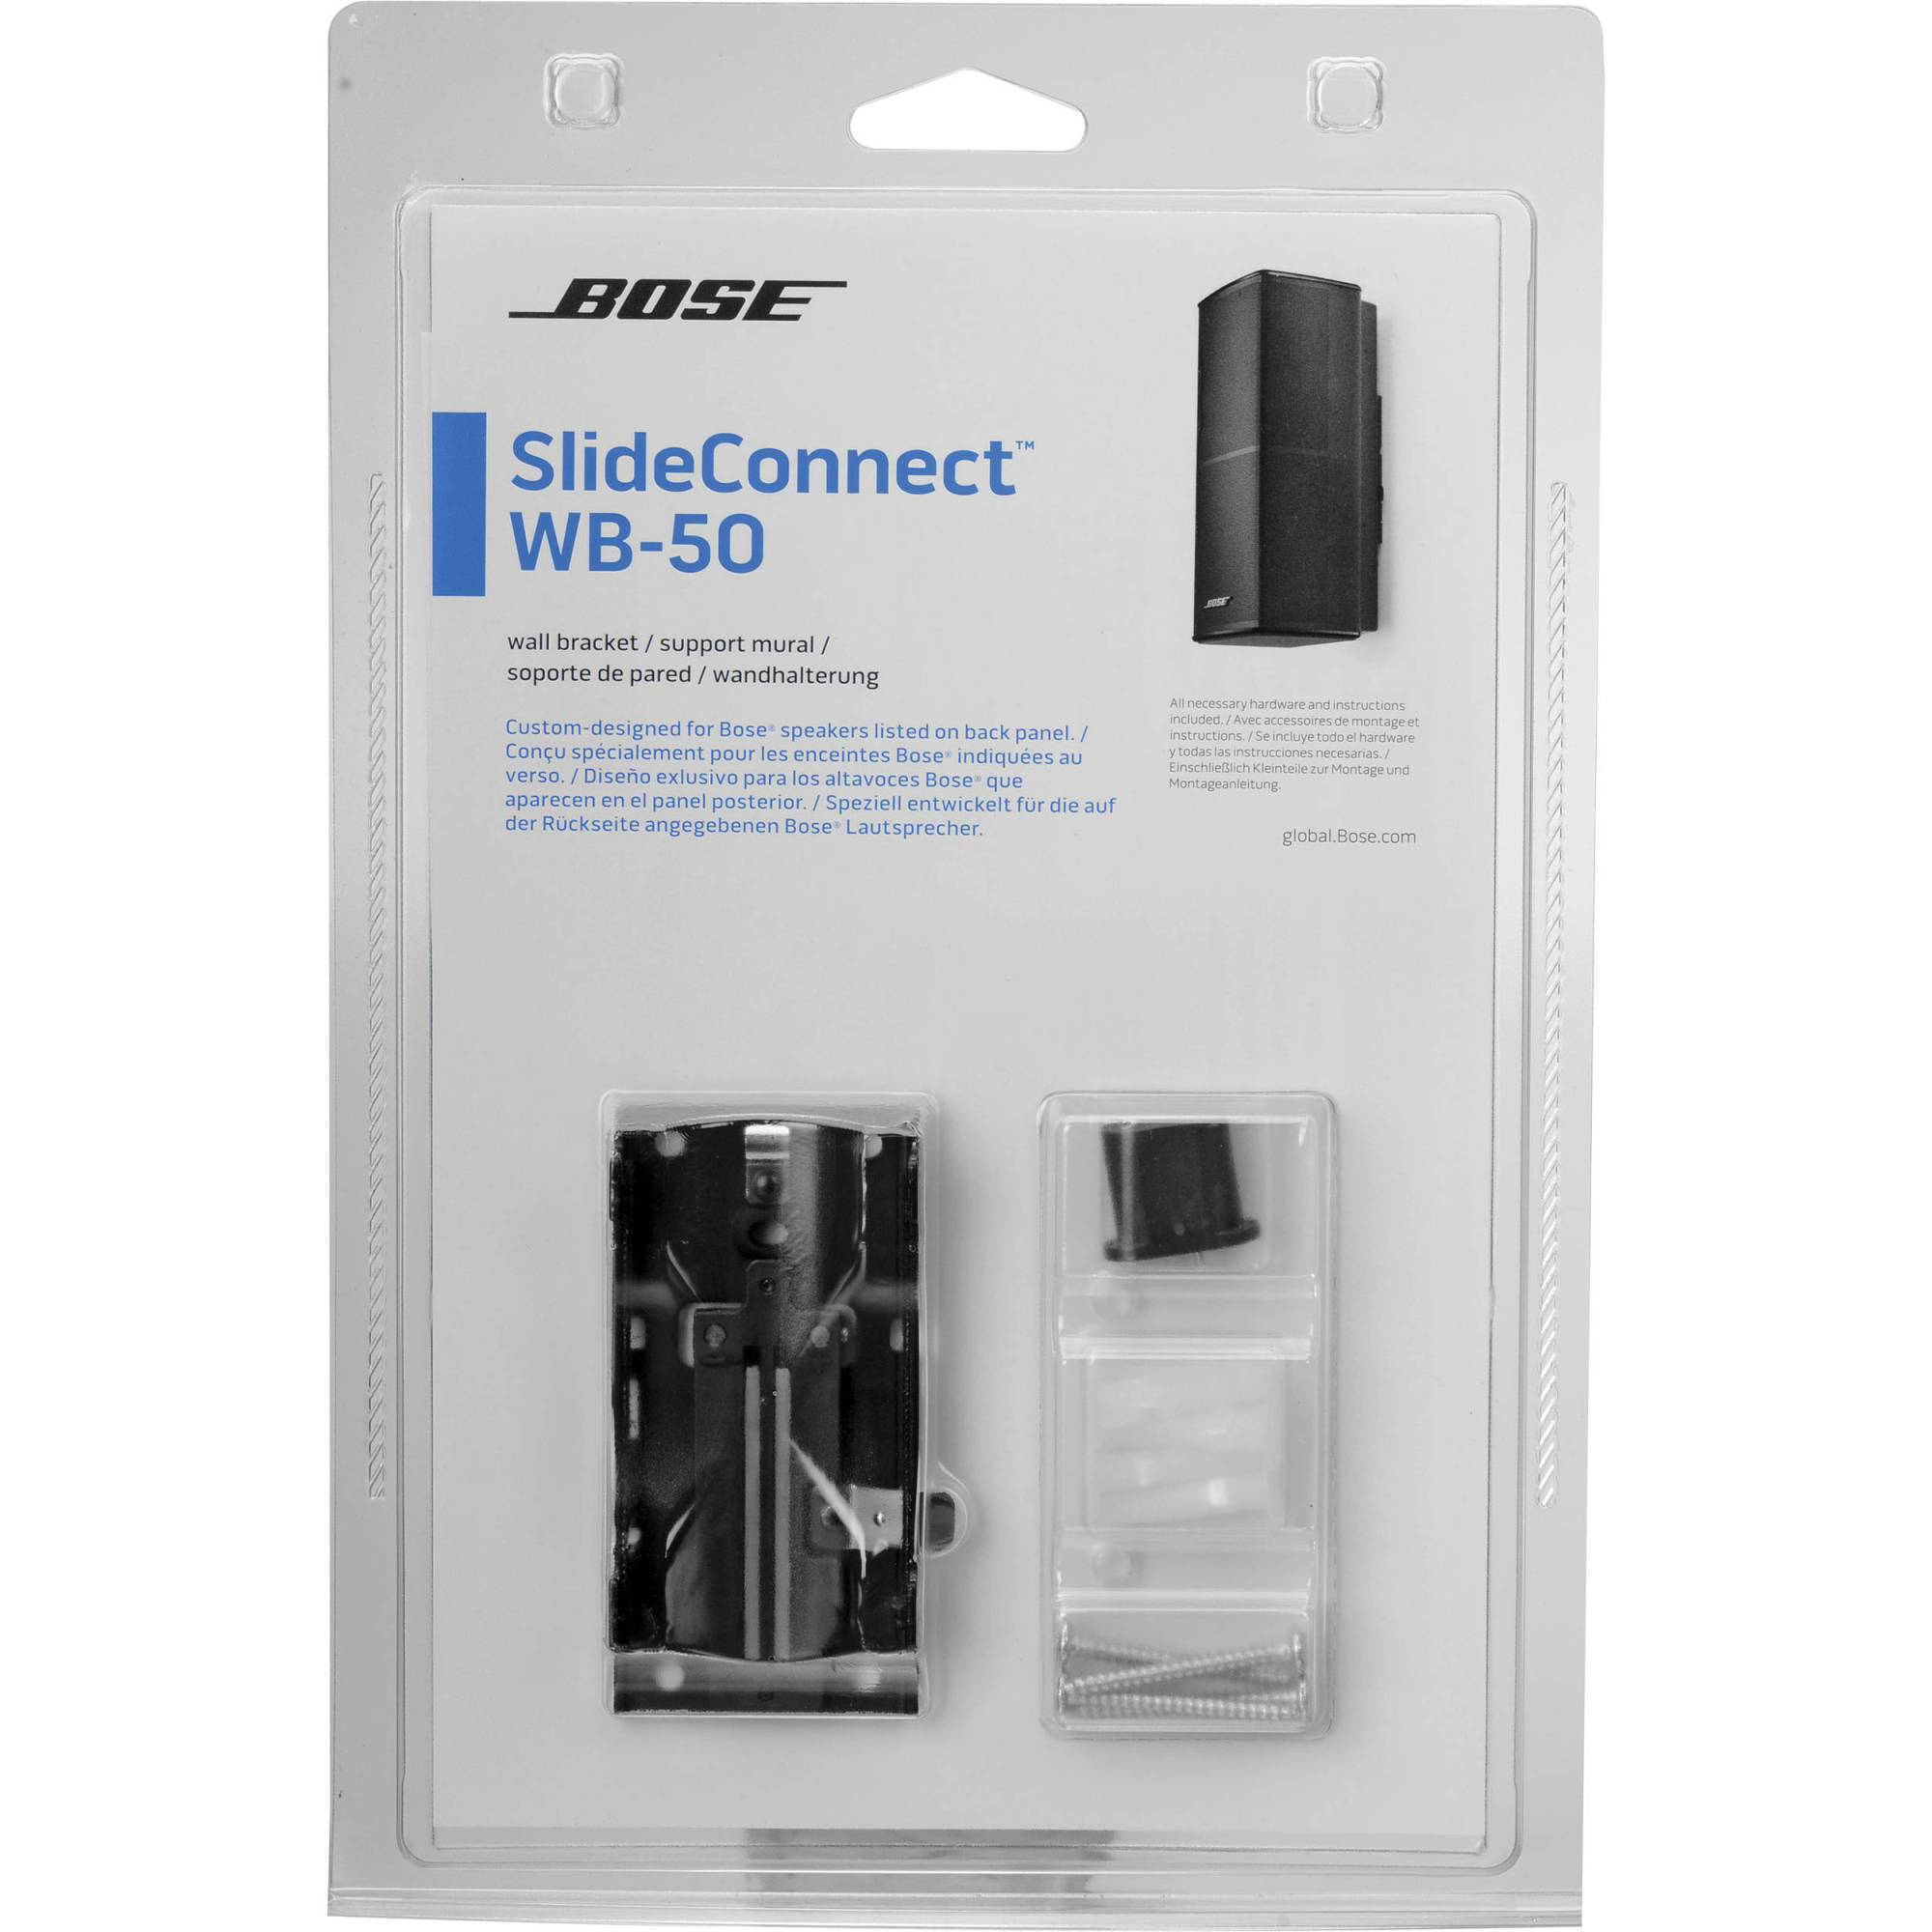 hight resolution of bose slideconnect wb 50 wall bracket black